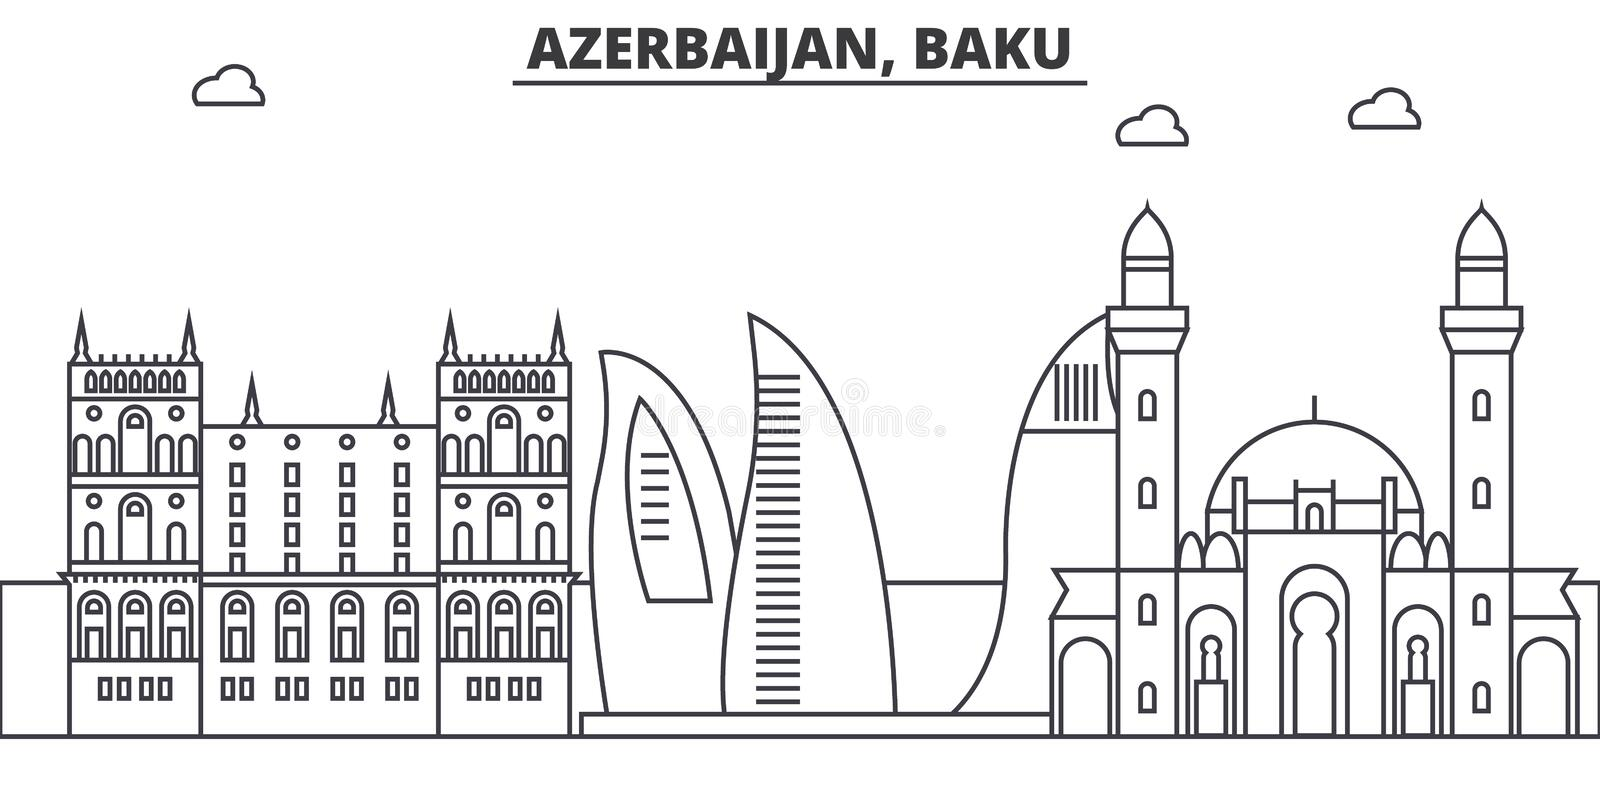 Azerbaijan, Baku architecture line skyline illustration. Linear vector cityscape with famous landmarks, city sights royalty free illustration